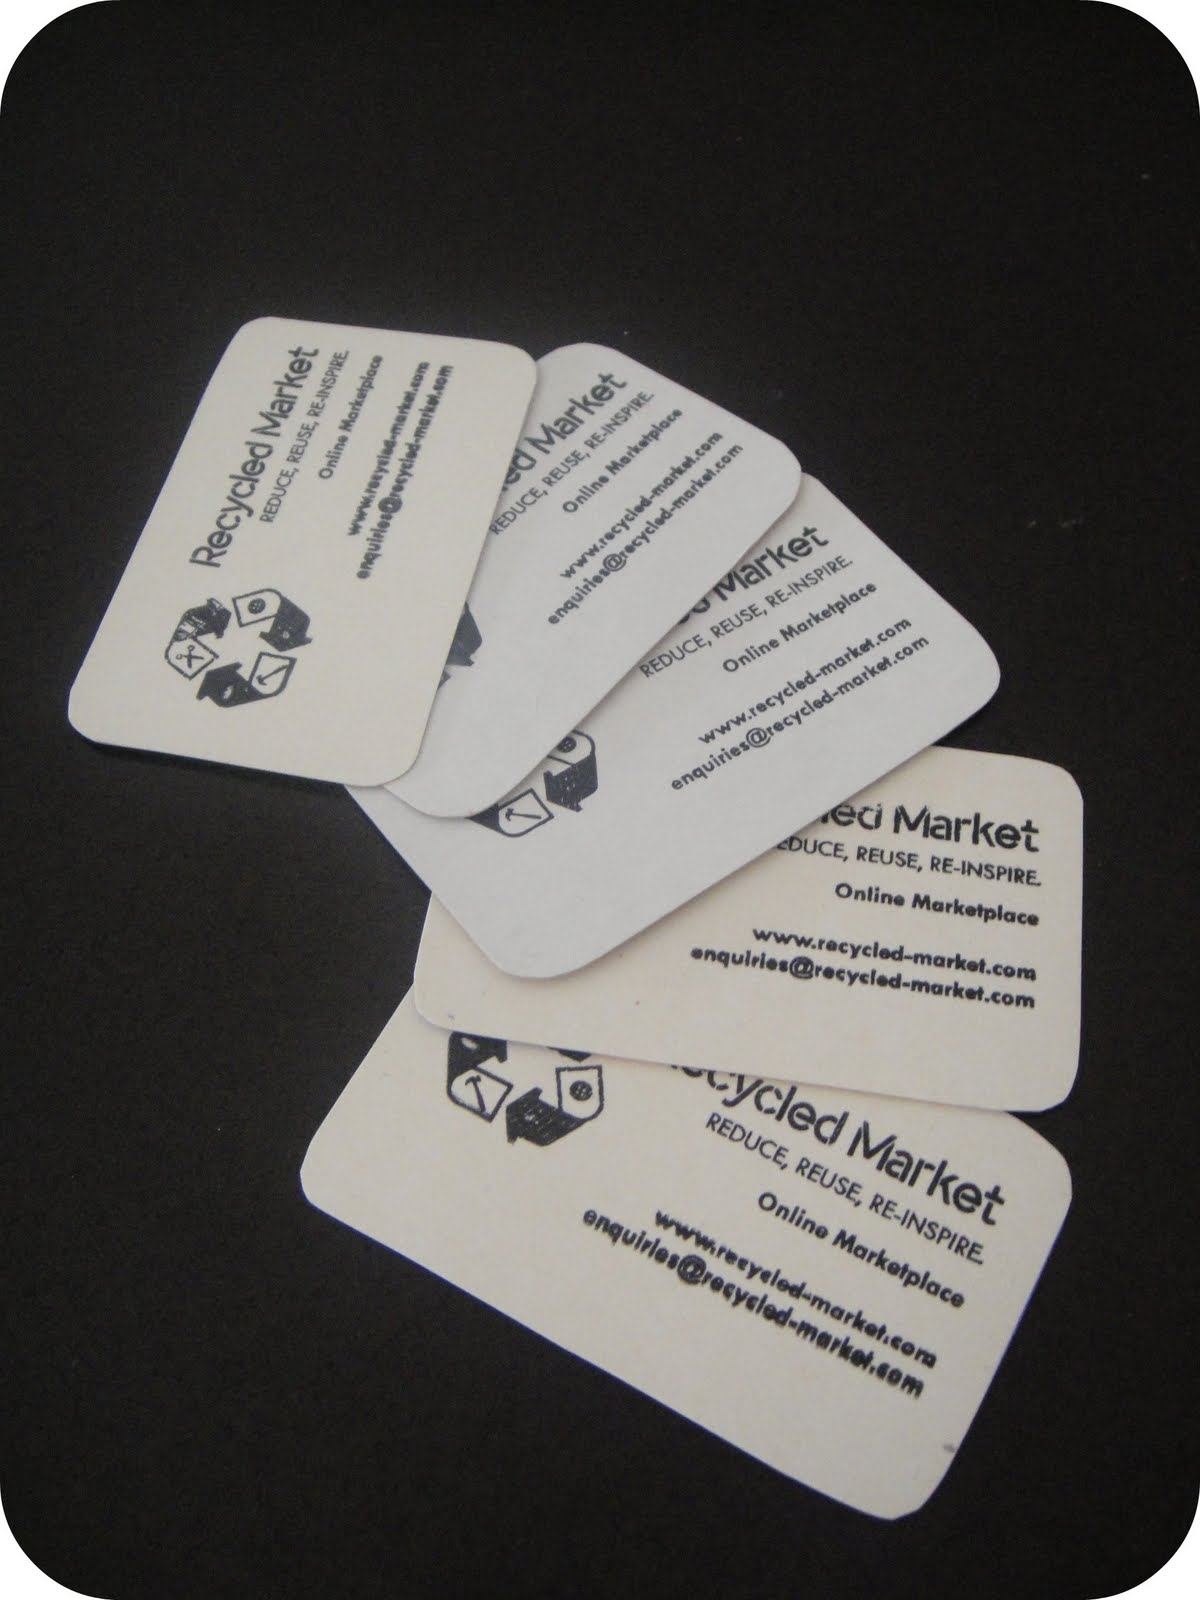 Recycled market recycled market business cards ready reheart Gallery